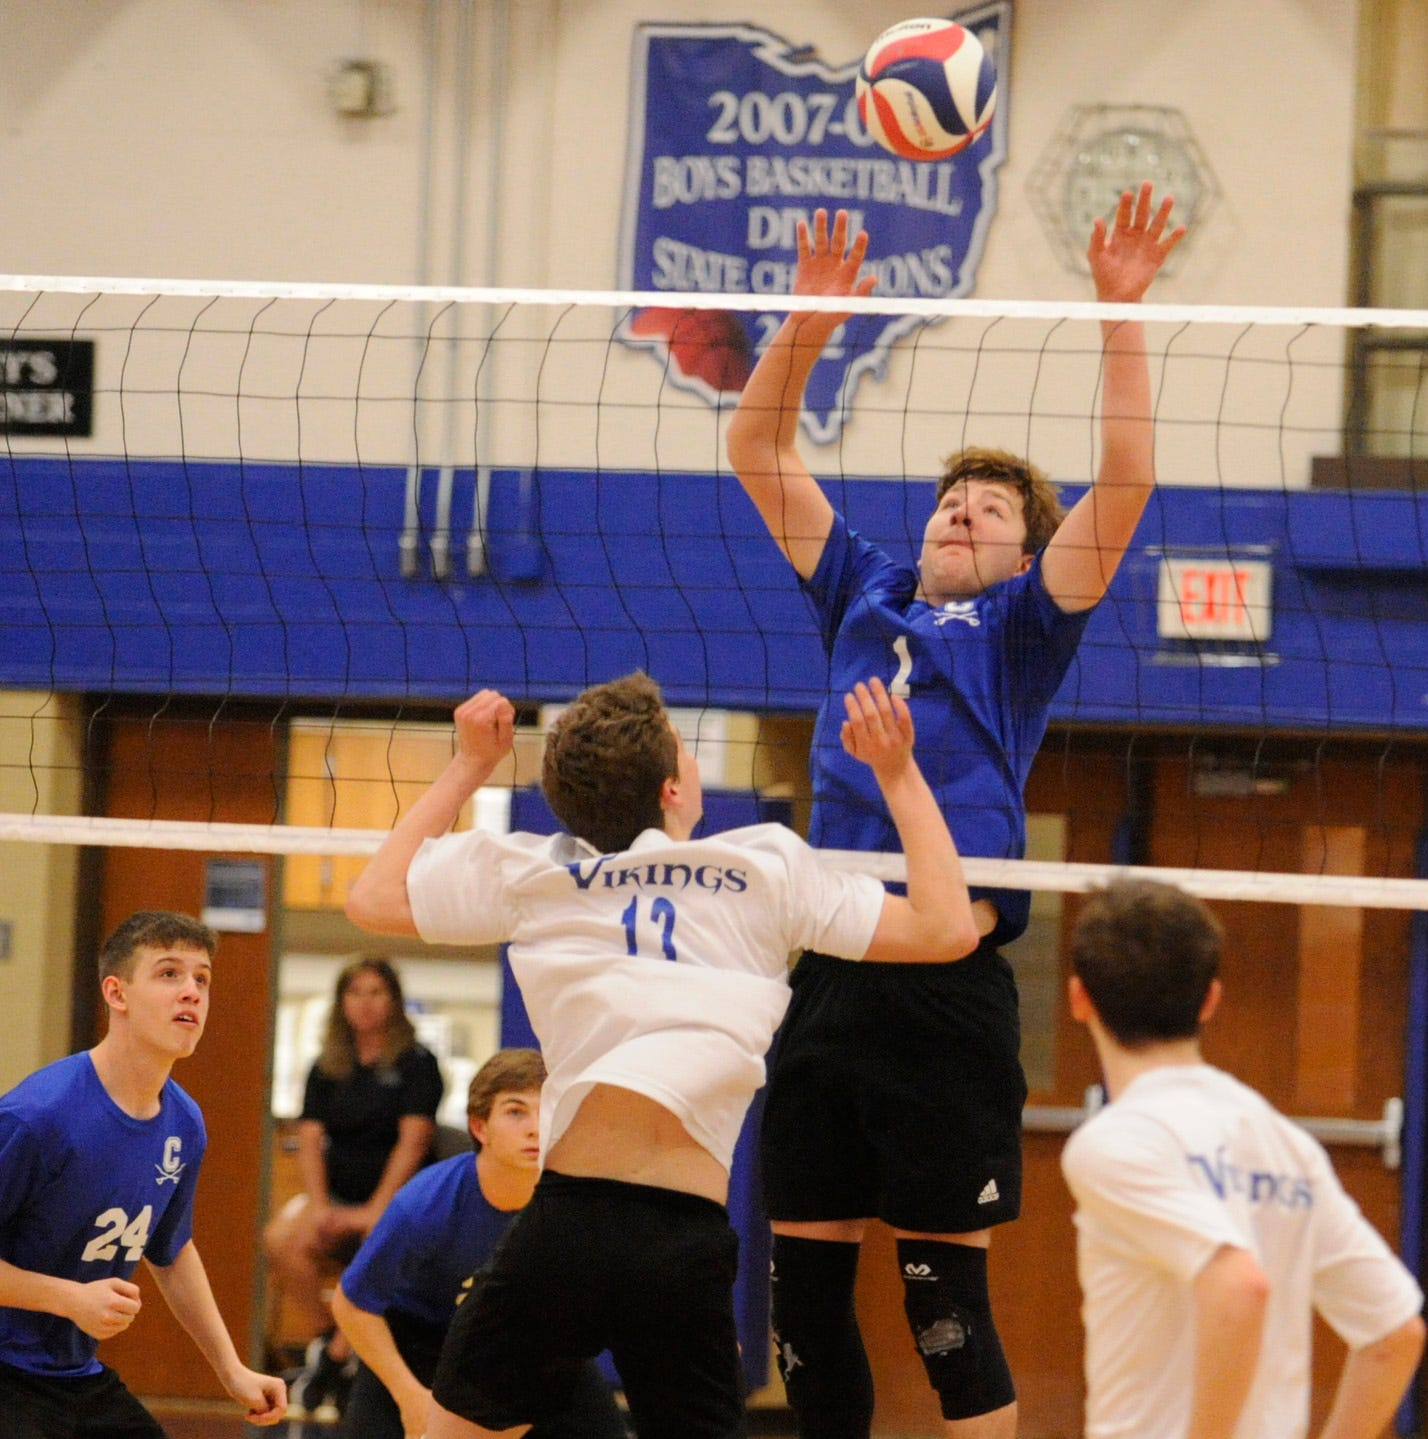 HS BOYS VOLLEYBALL: Chillicothe closes out regular season with 3-0 win over Miamisburg